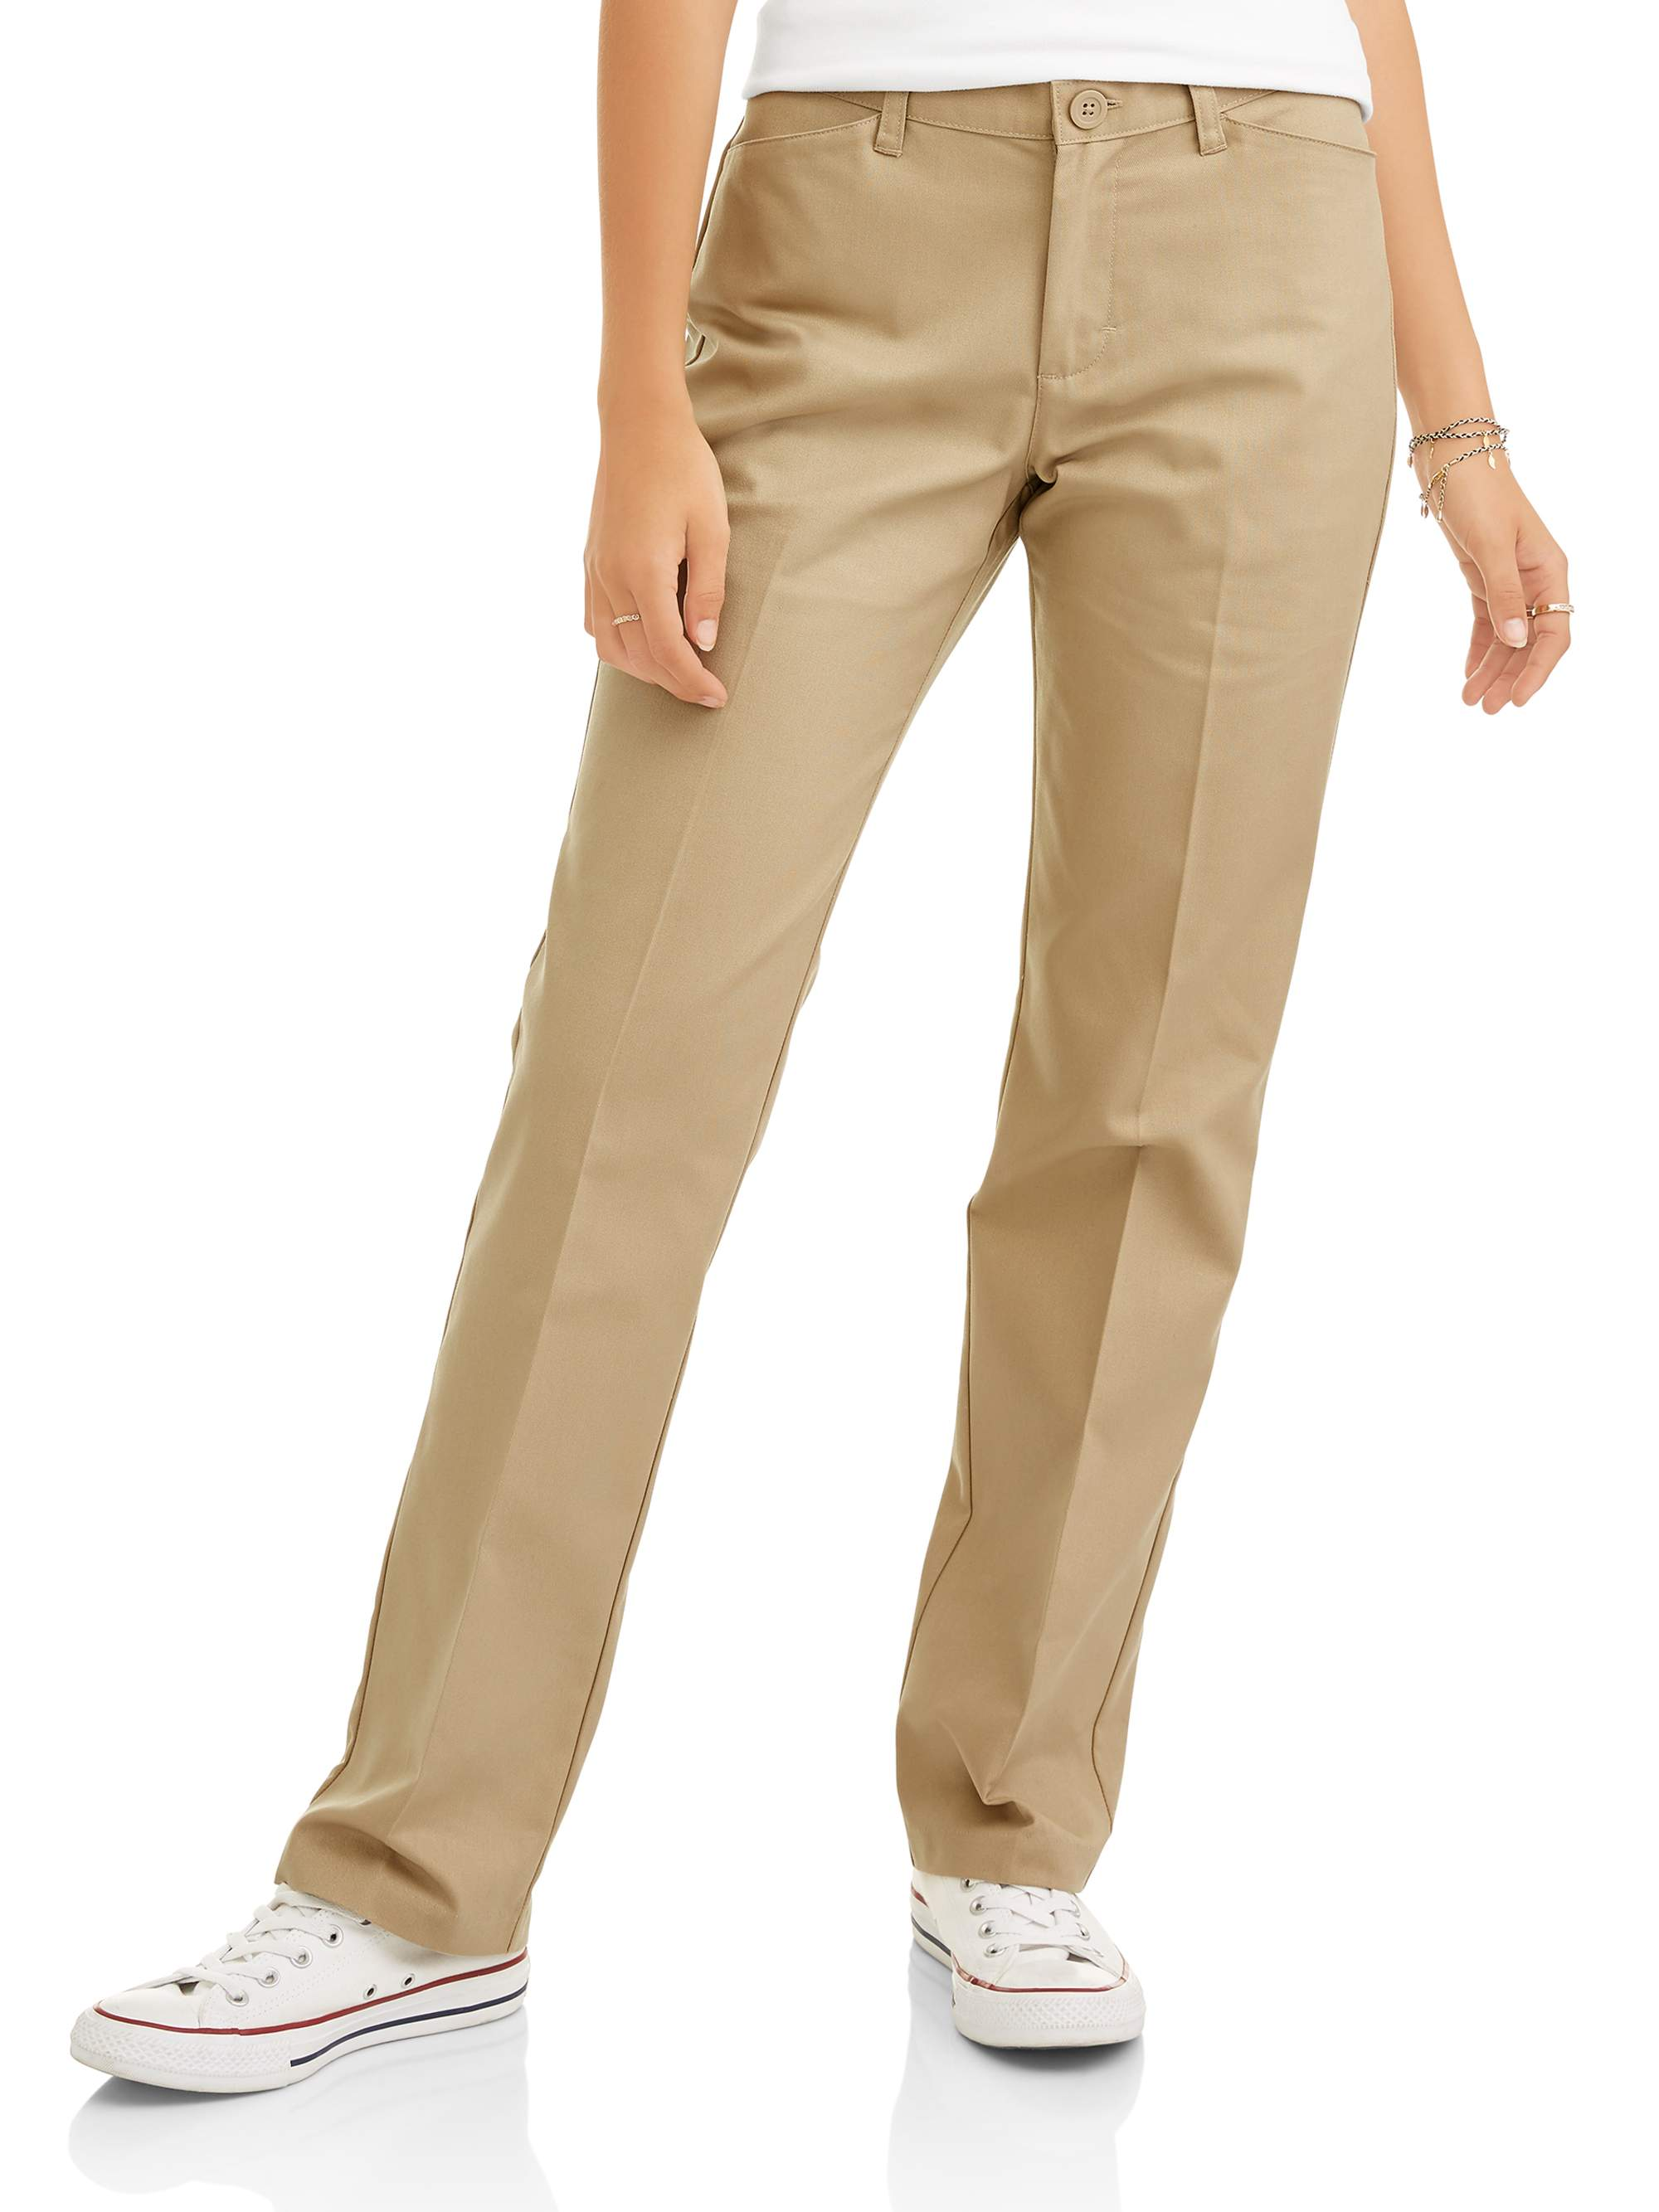 Juniors' Flat Front Low Rise School Uniform Pant